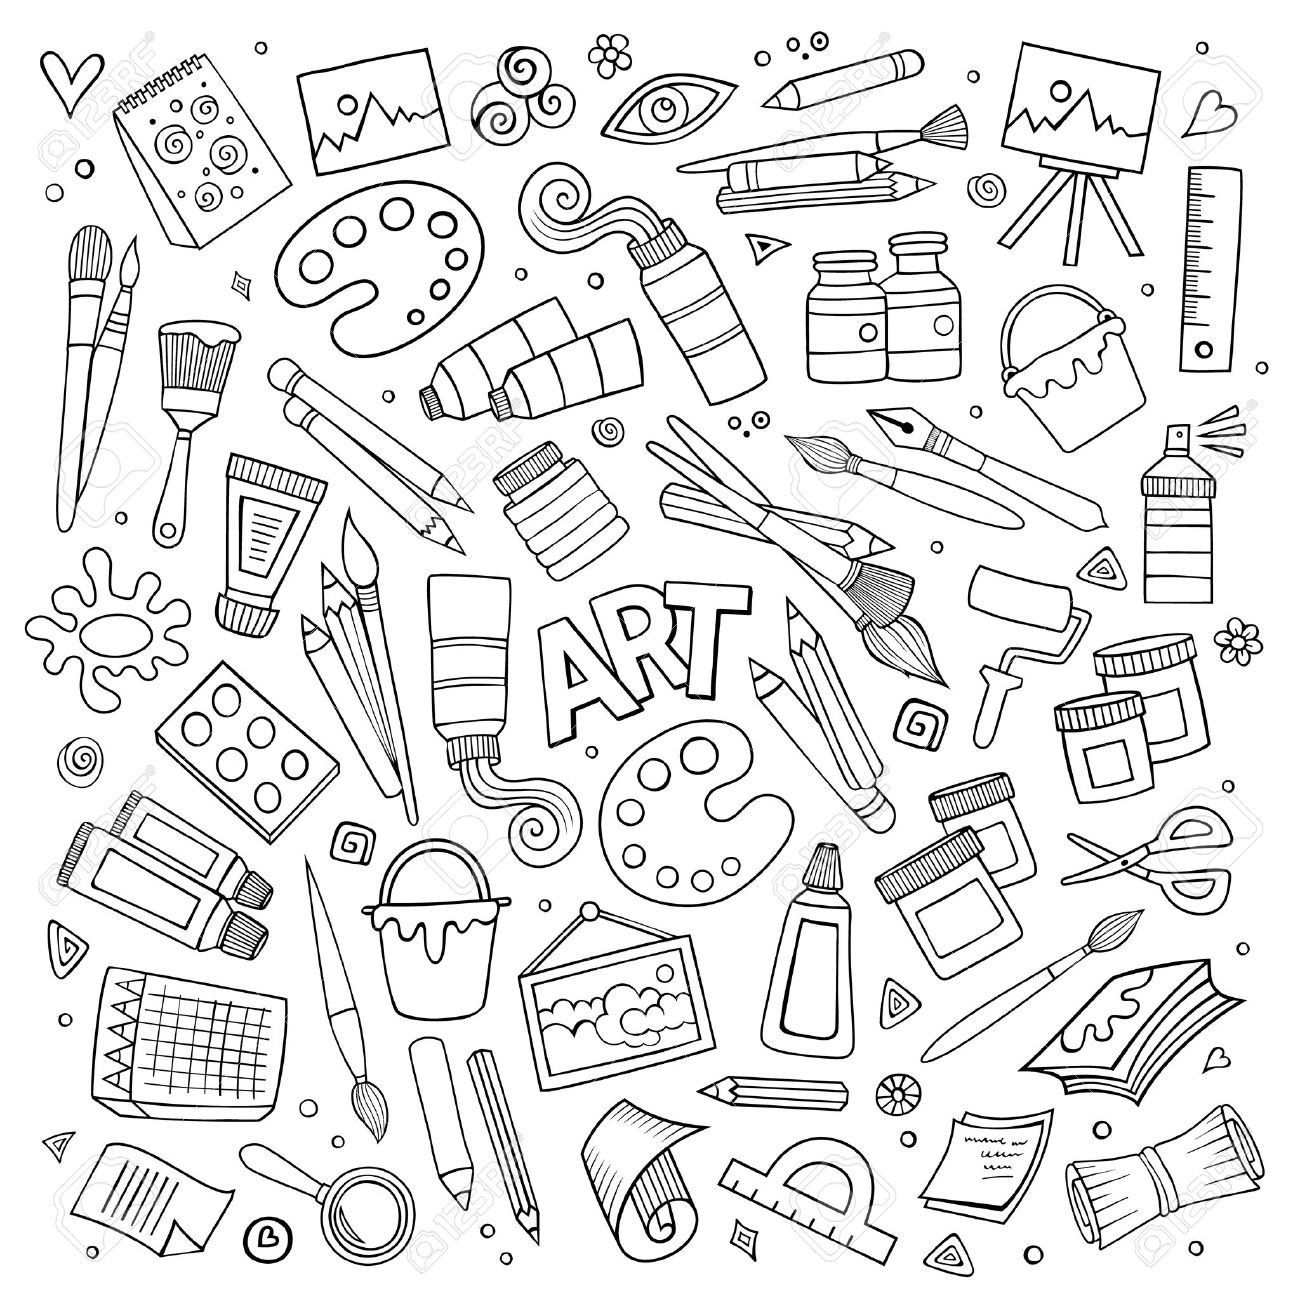 Art and craft hand drawn vector symbols and objects - 40908897